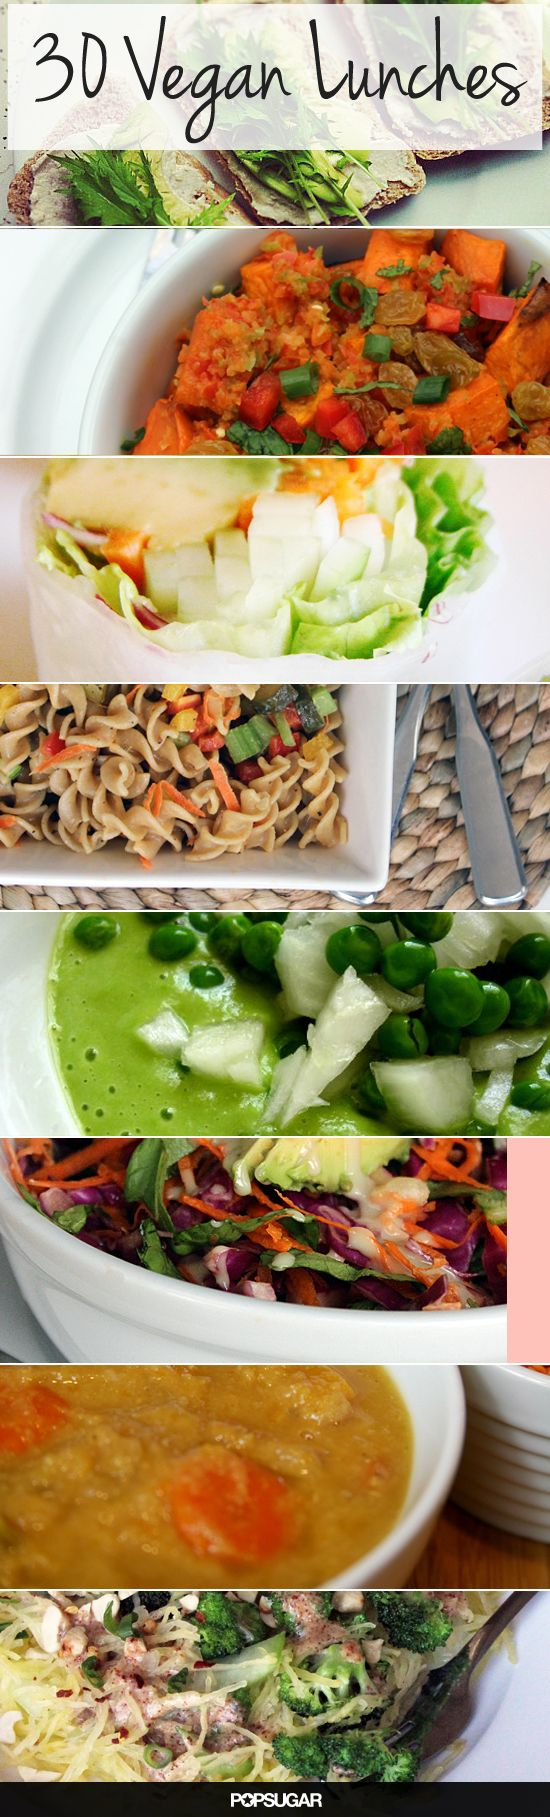 30 Vegan Lunches You Can Take to Work